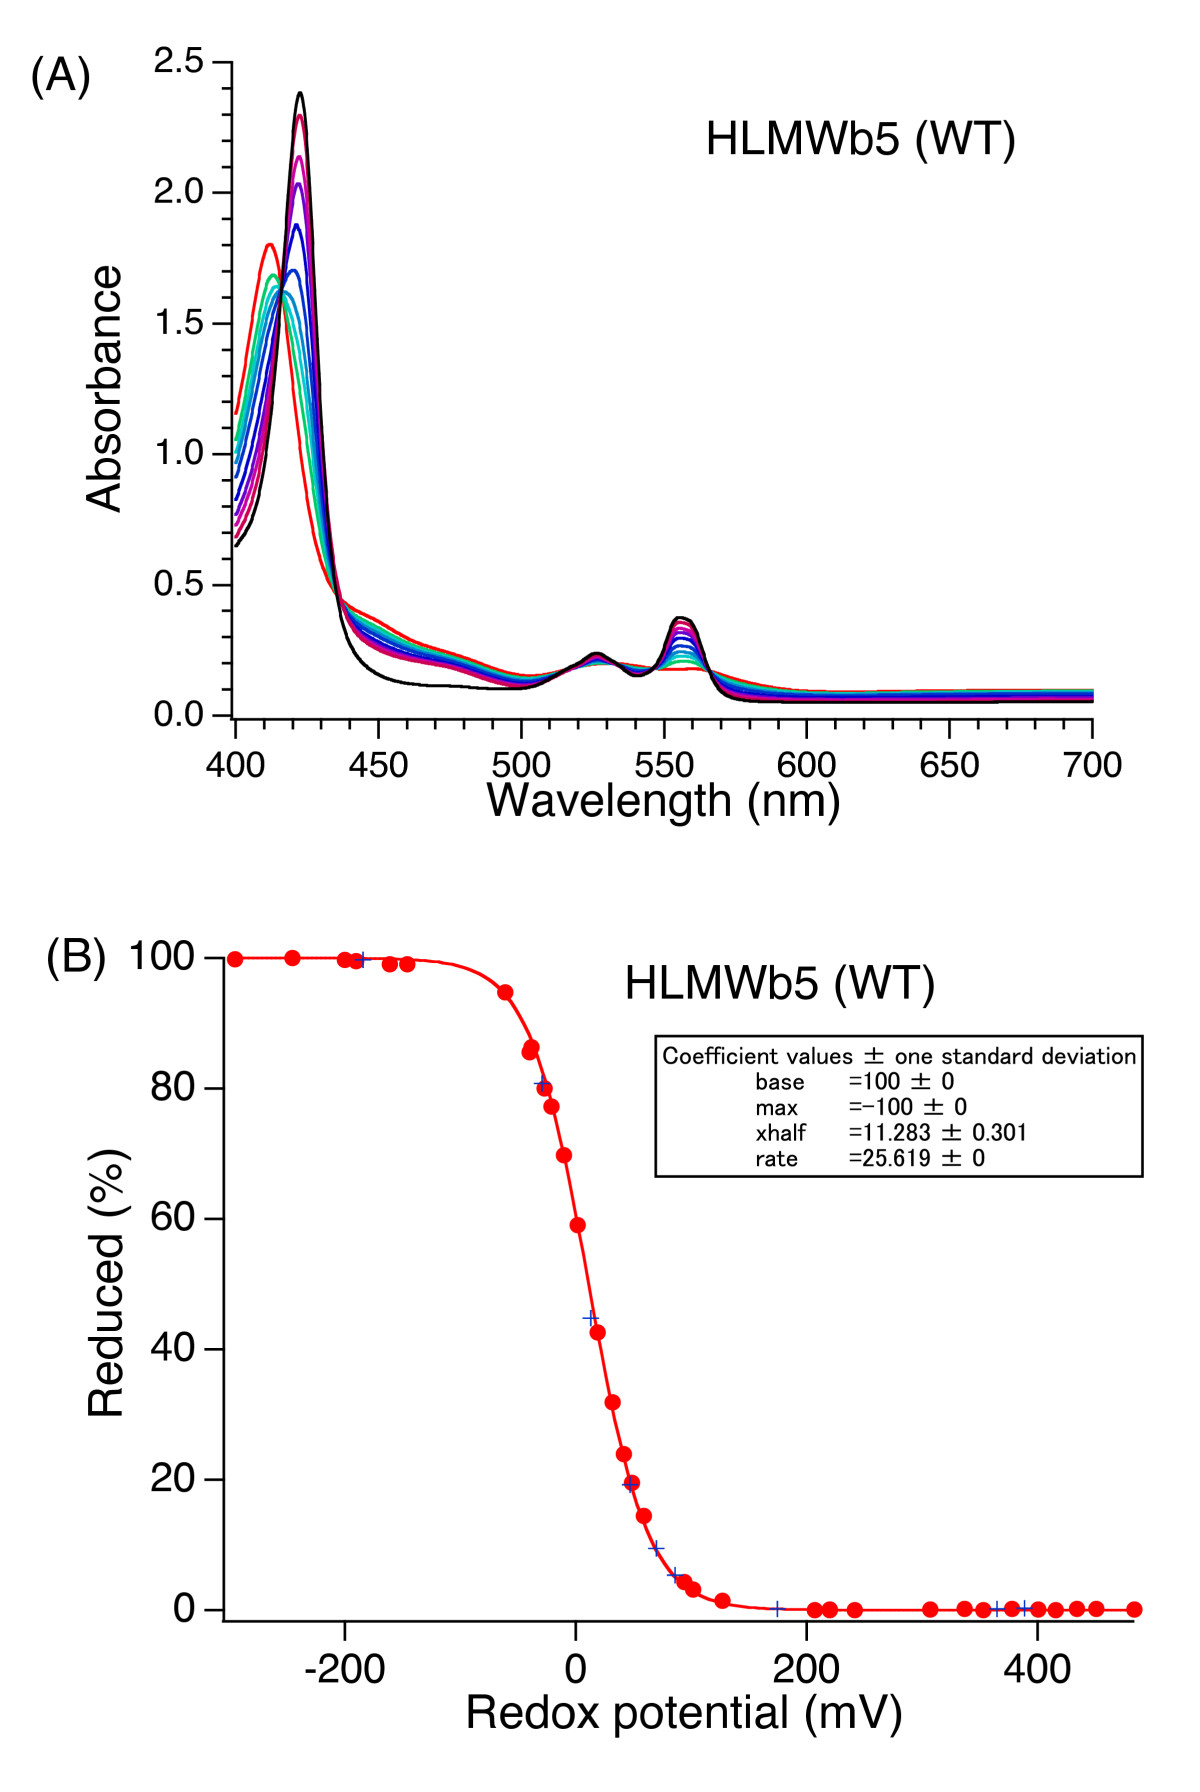 https://static-content.springer.com/image/art%3A10.1186%2F1423-0127-17-90/MediaObjects/12929_2010_Article_250_Fig5_HTML.jpg